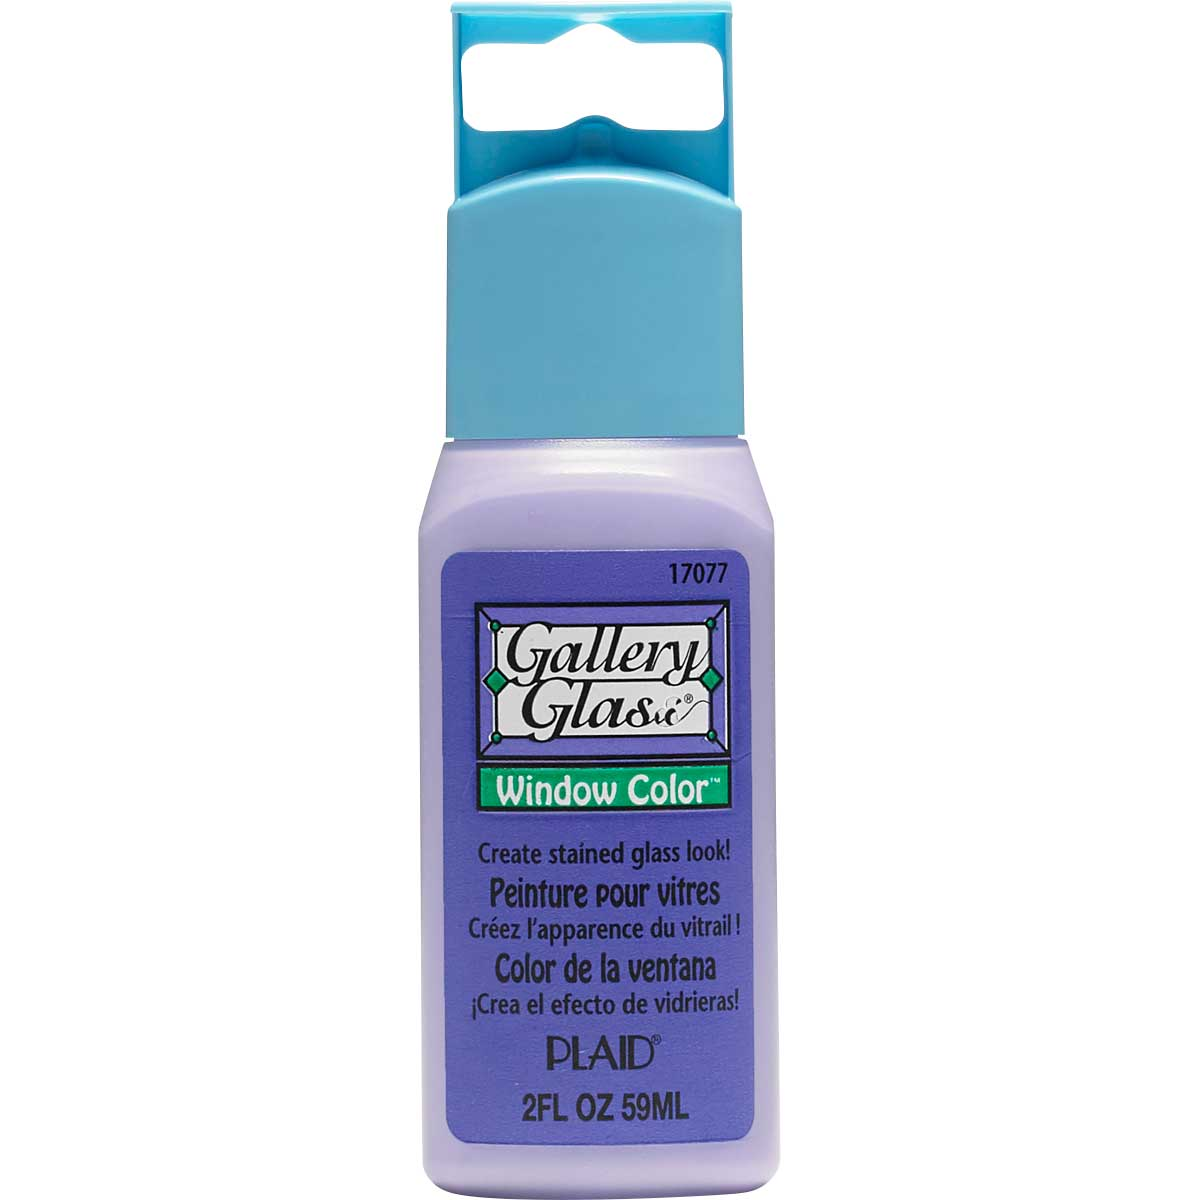 Gallery Glass ® Window Color™ - Lavender, 2 oz. - 17077